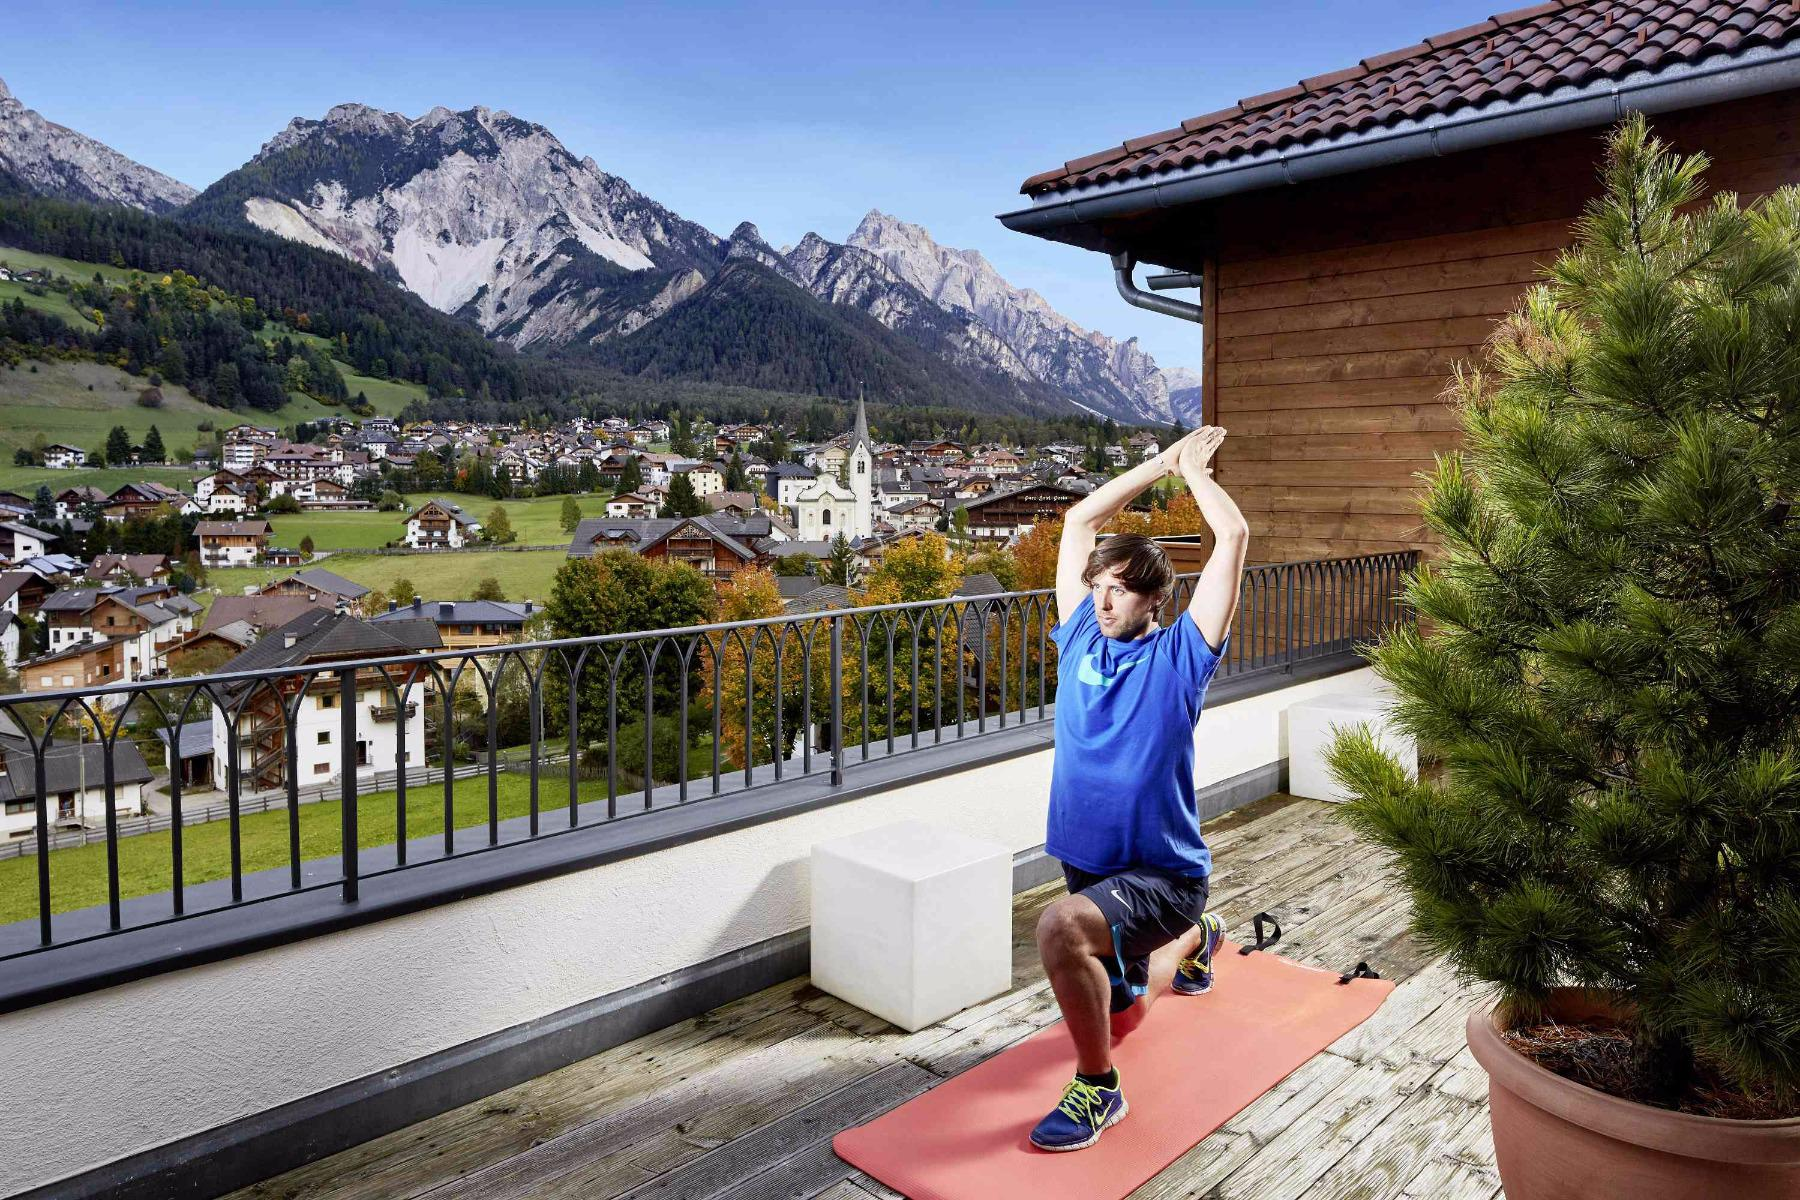 Pilates with Willi in the Fit & Fun week programm